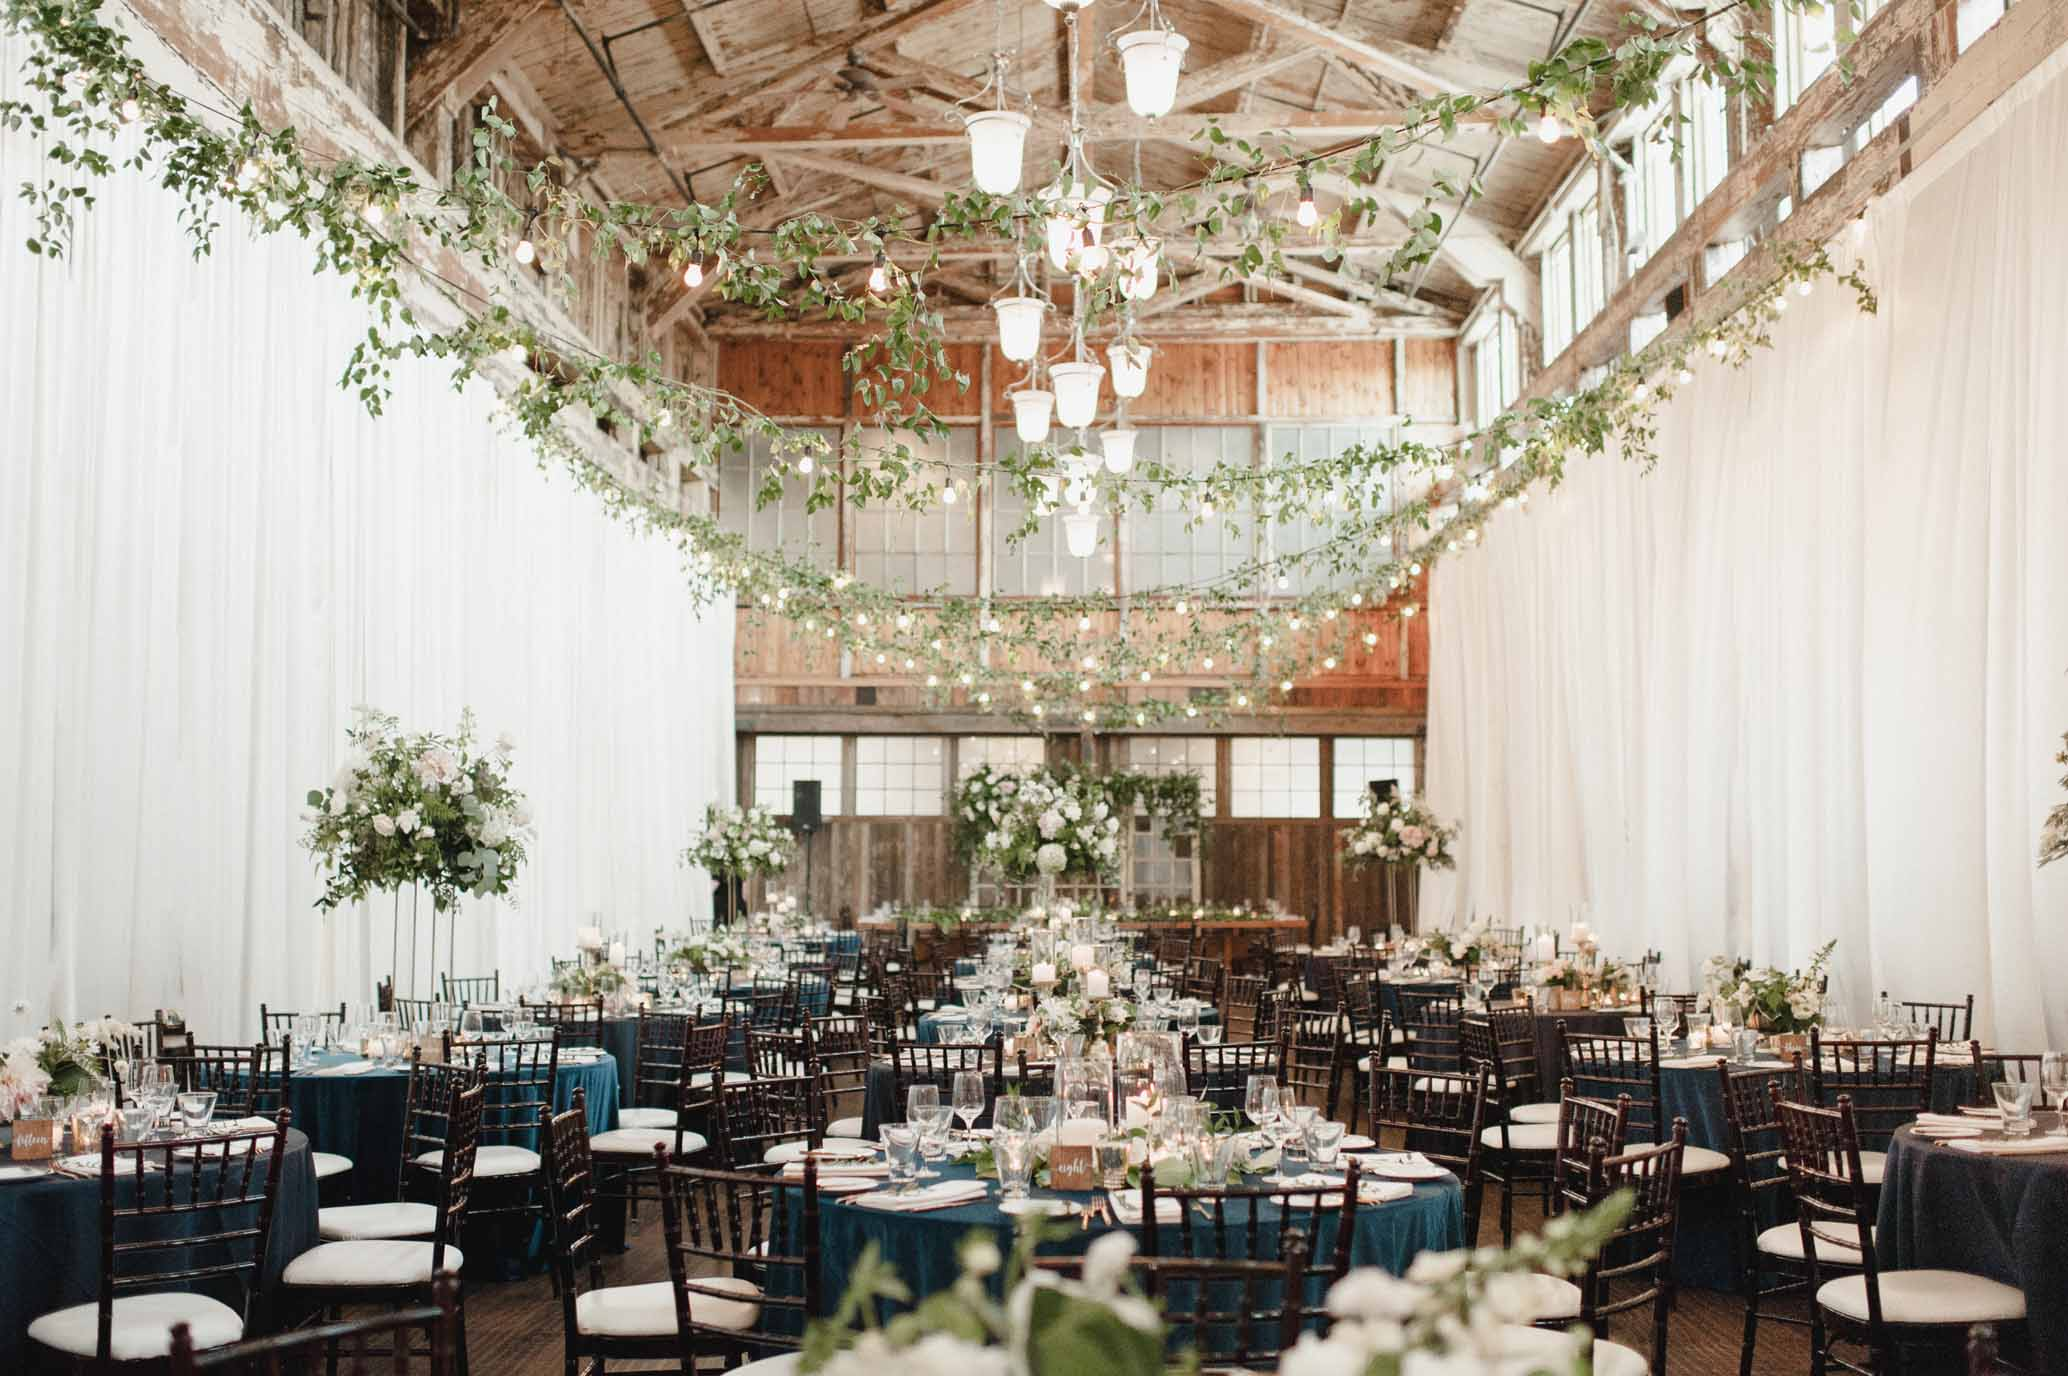 Wedding reception at Sodo Park Seattle with blue linens, greenery in ceiling, tall and low centerpieces - designed by Flora Nova Design Seattle